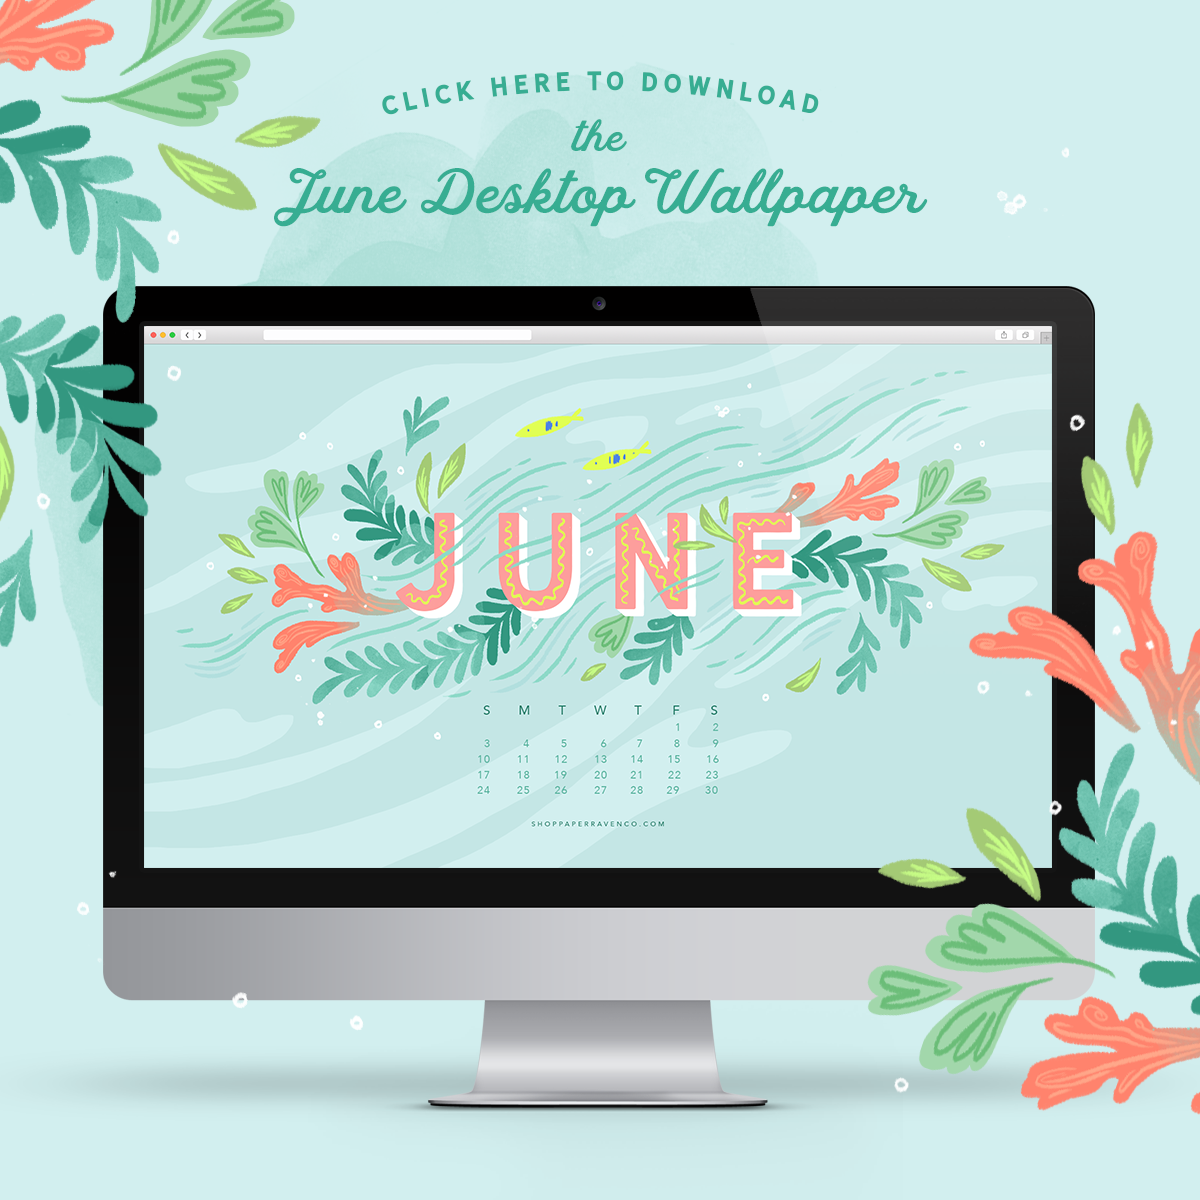 June 2018 Illustrated Desktop Wallpaper